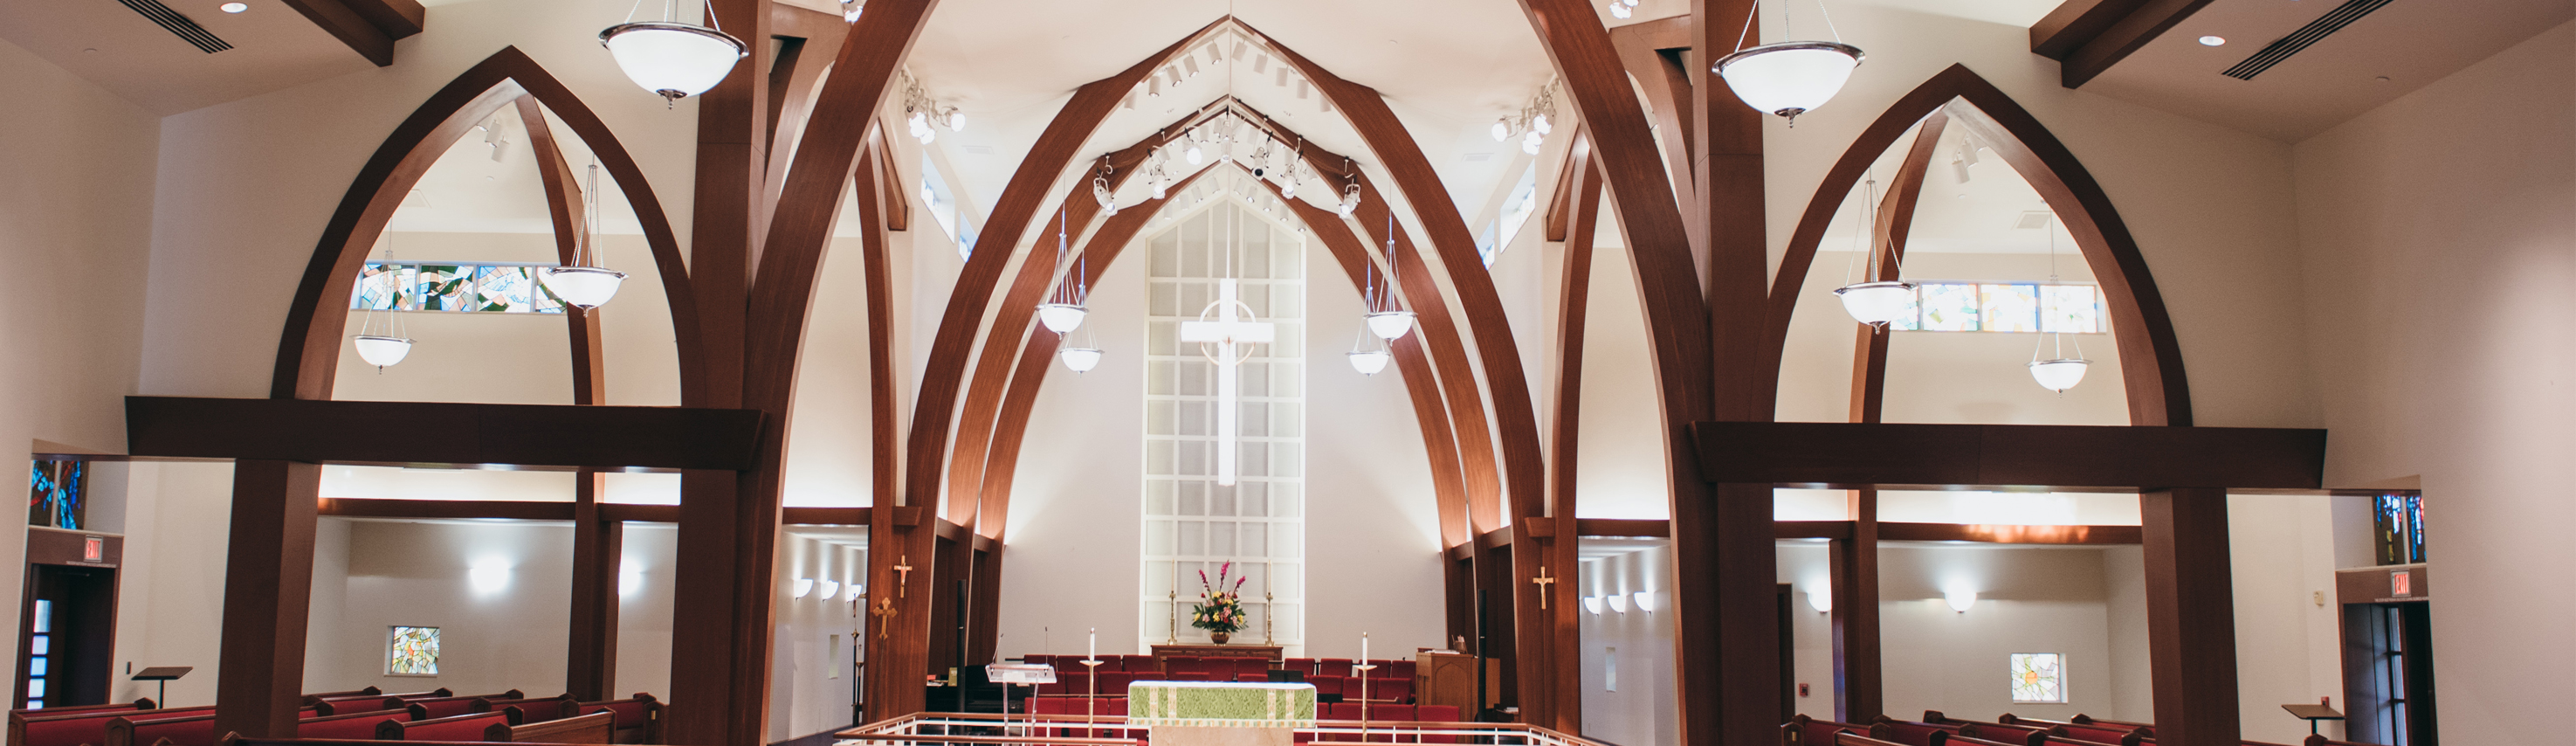 Chapel | St. Francis Episcopal Private School Houston